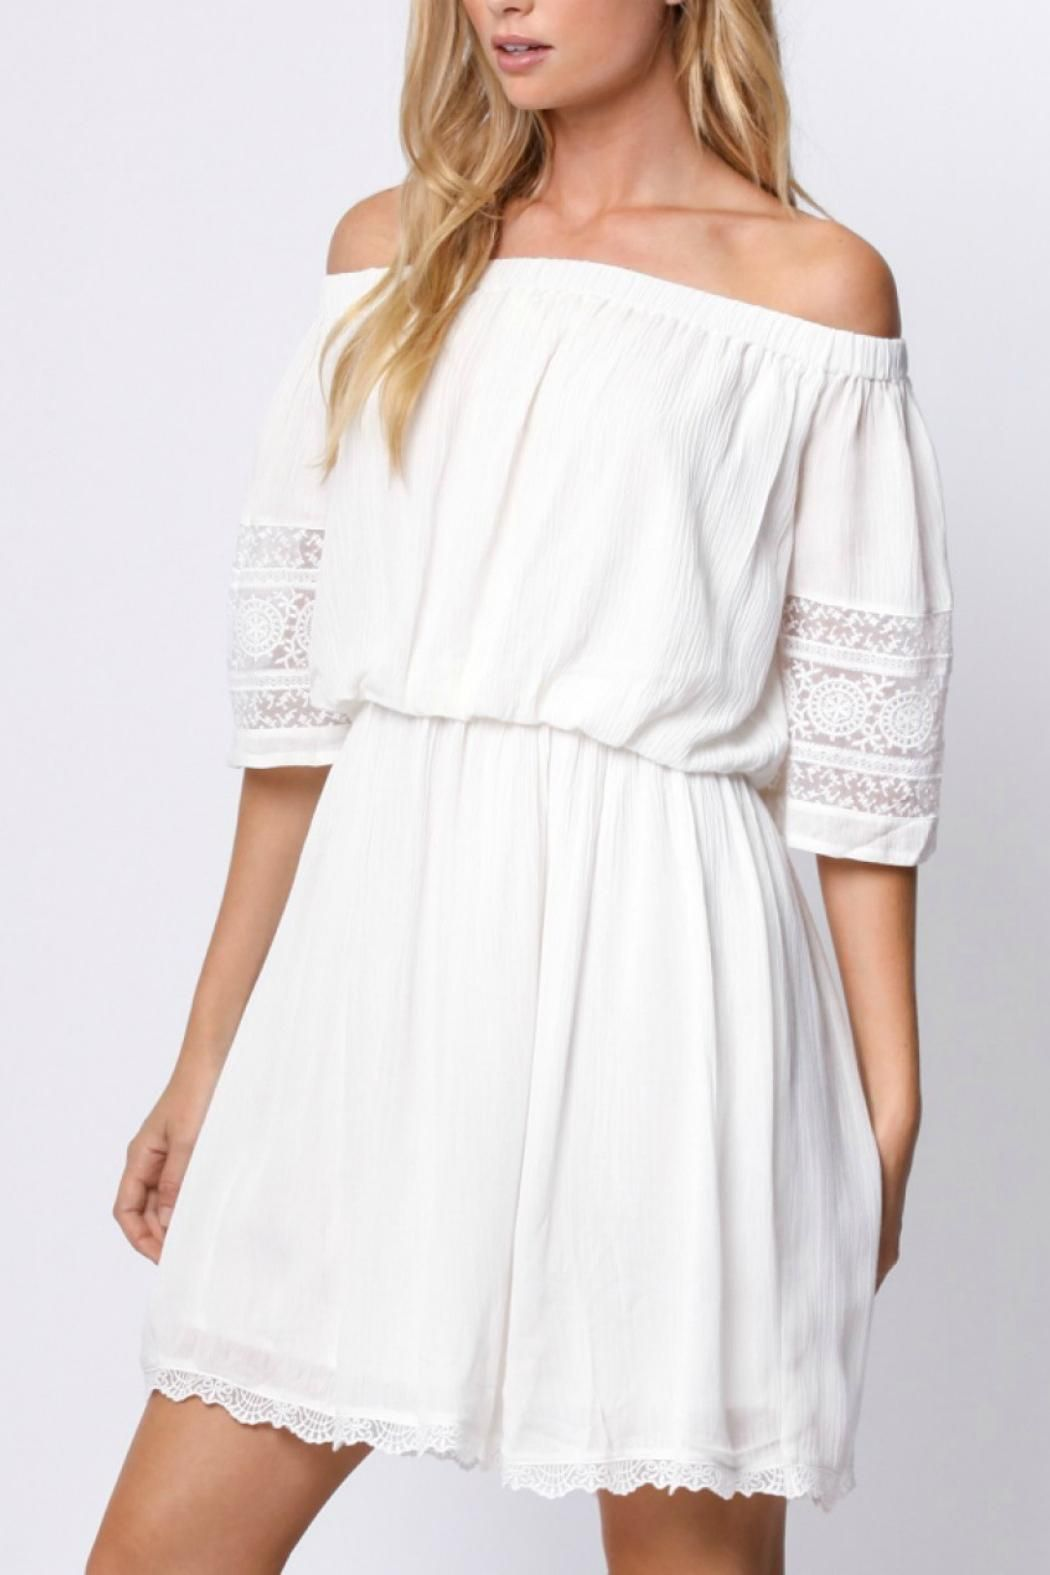 8eb116662b The off the shoulder look is totally in this year. This off the shoulder  white